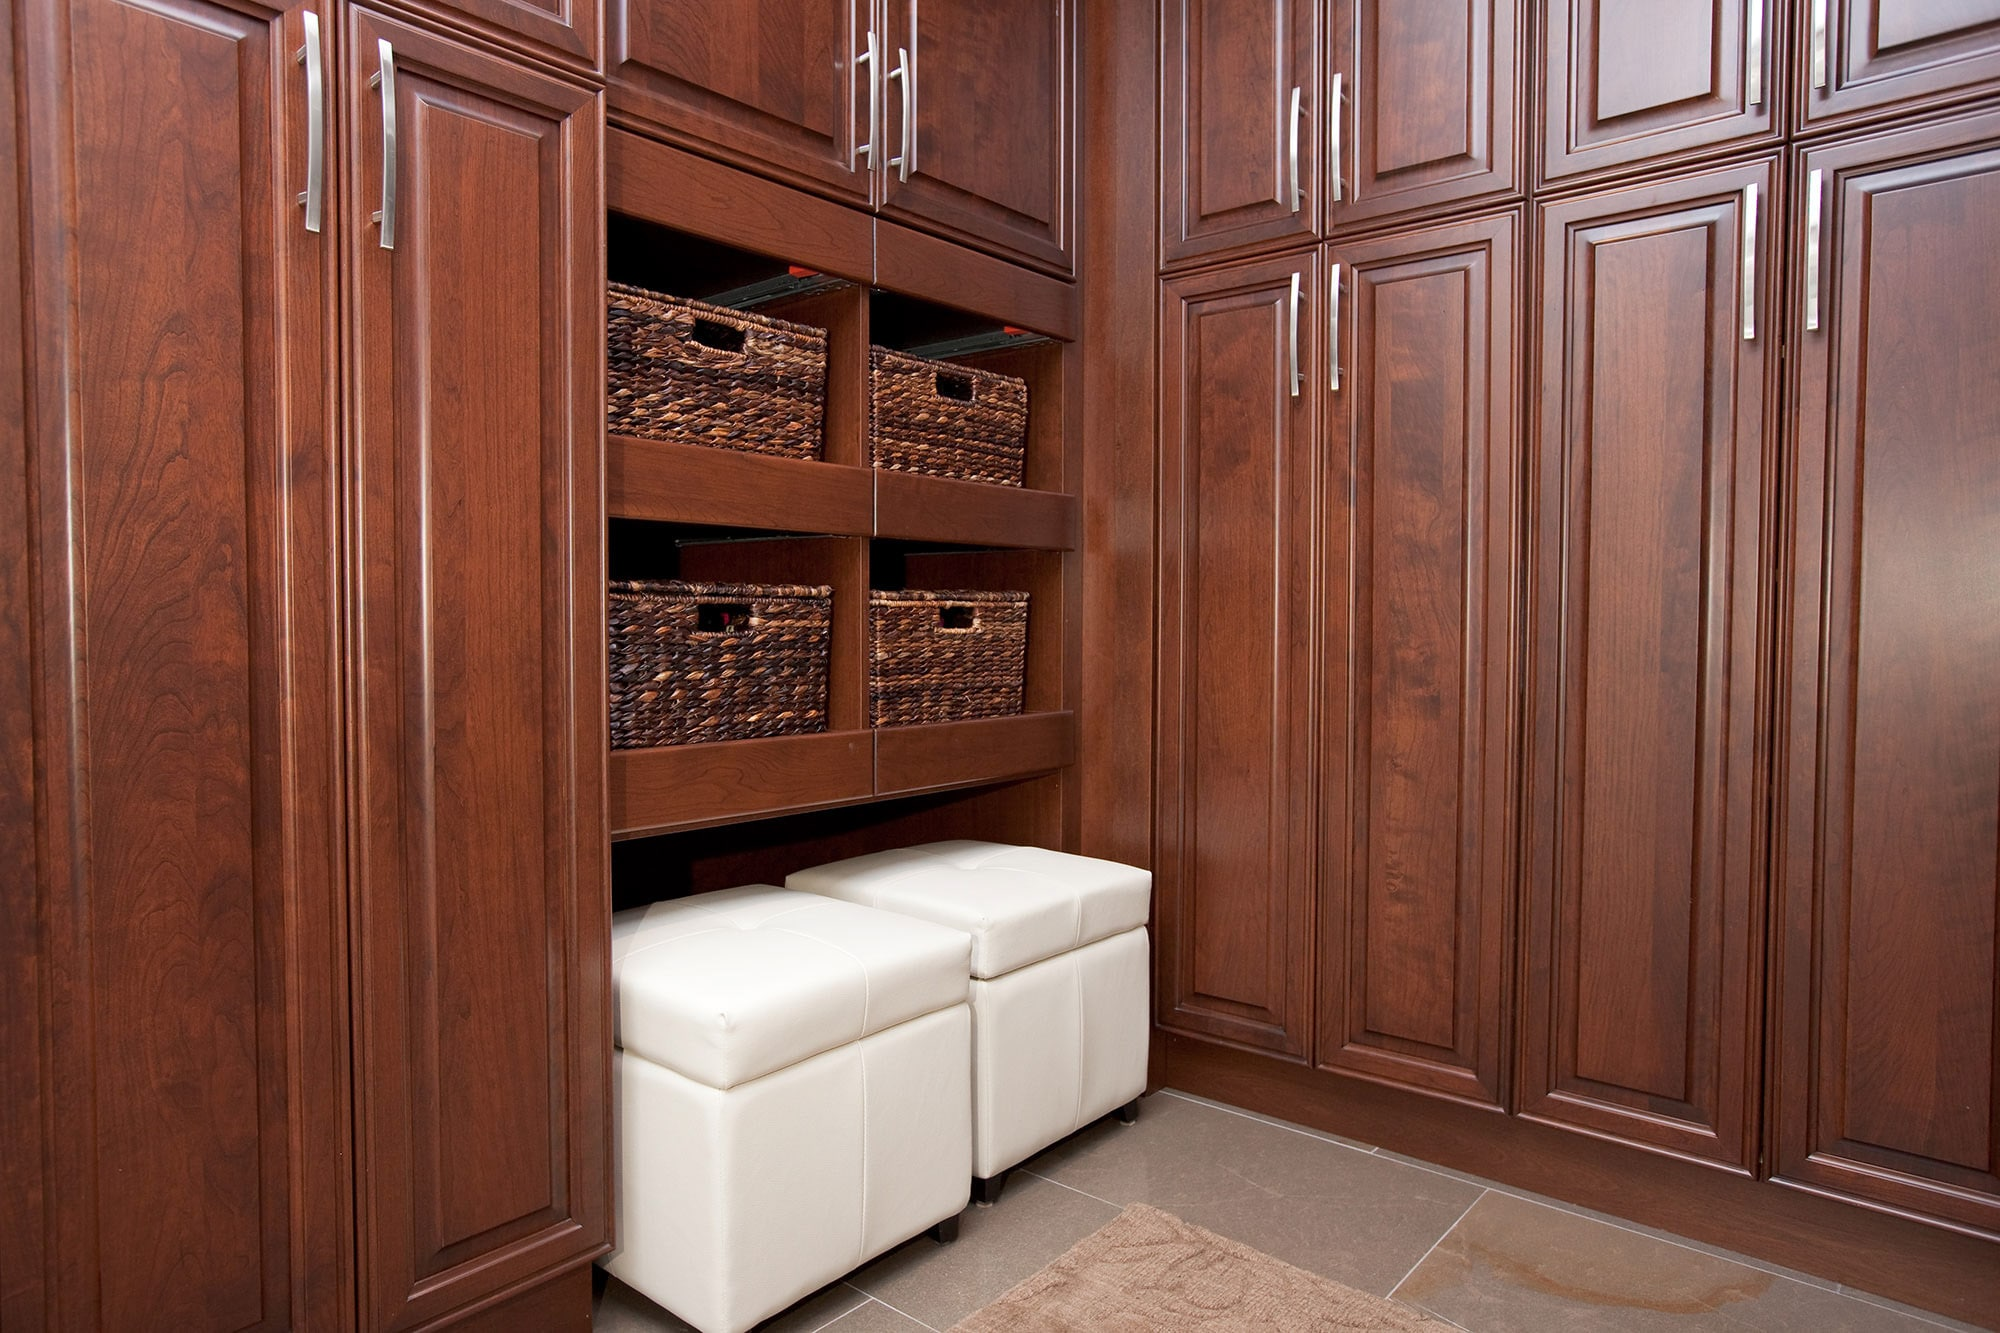 Mudroom featuring build-in cherry storage cabinets, wicker storage baskets and white leather box seating